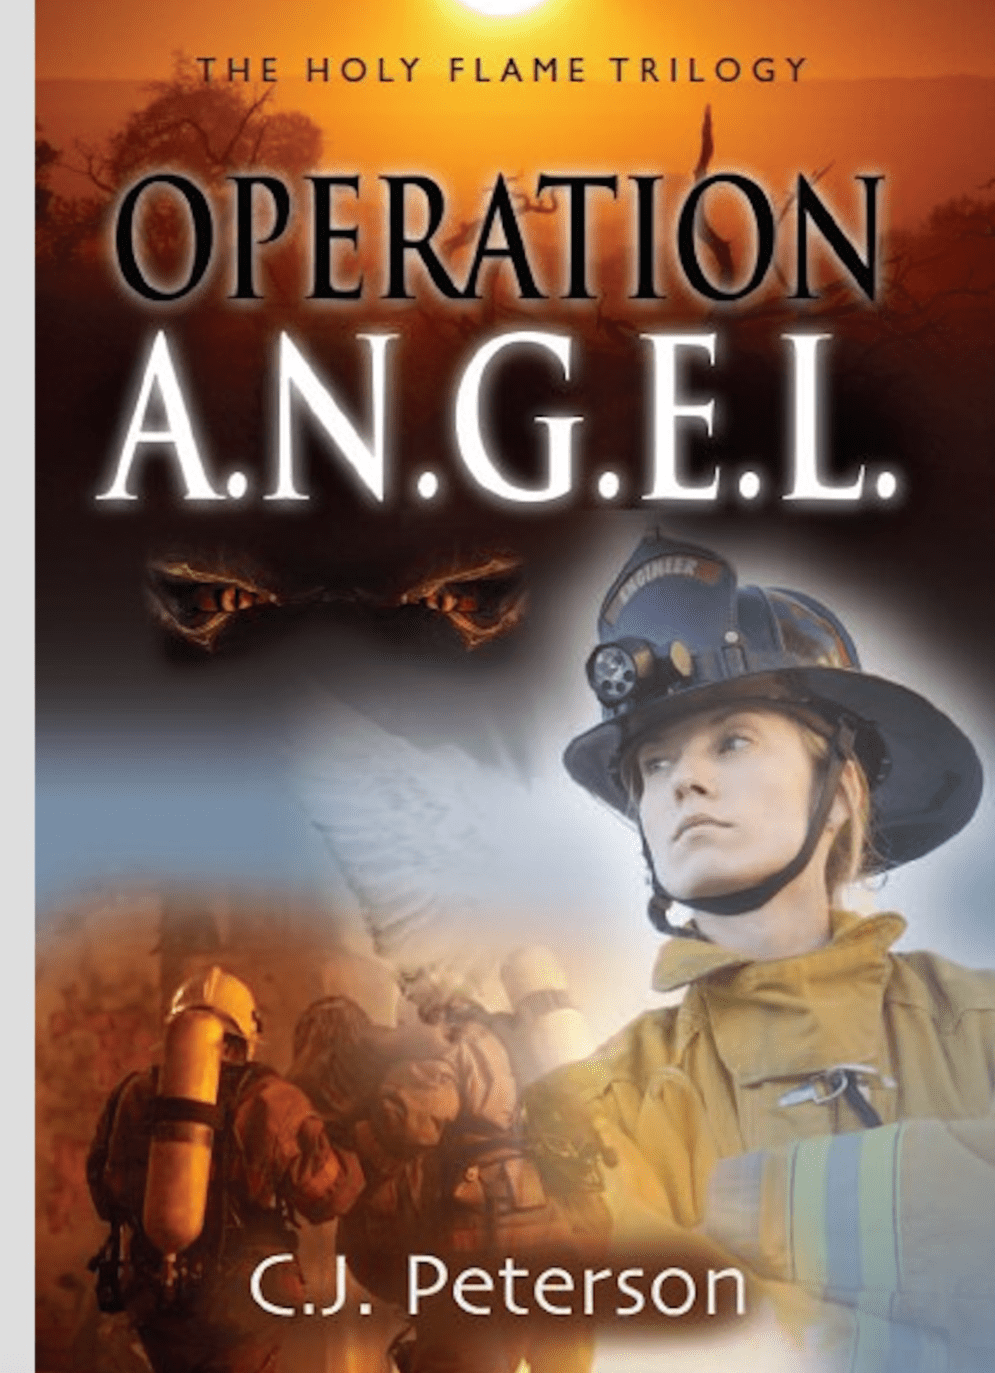 Operation A.n.g.e.l. (book 2, The Holy Flame Trilogy)